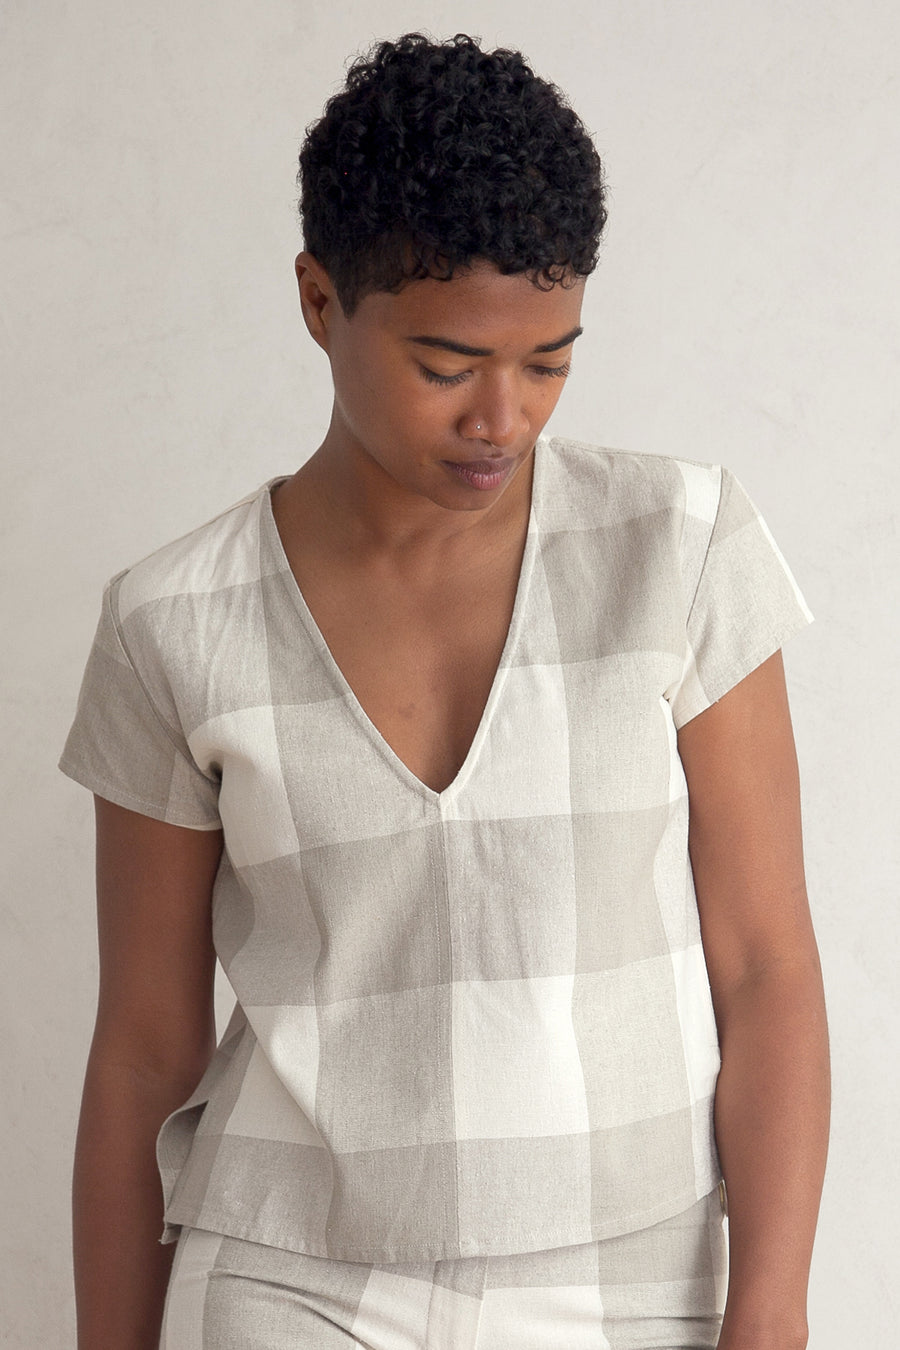 V-NECK TOP - NATURAL GINGHAM